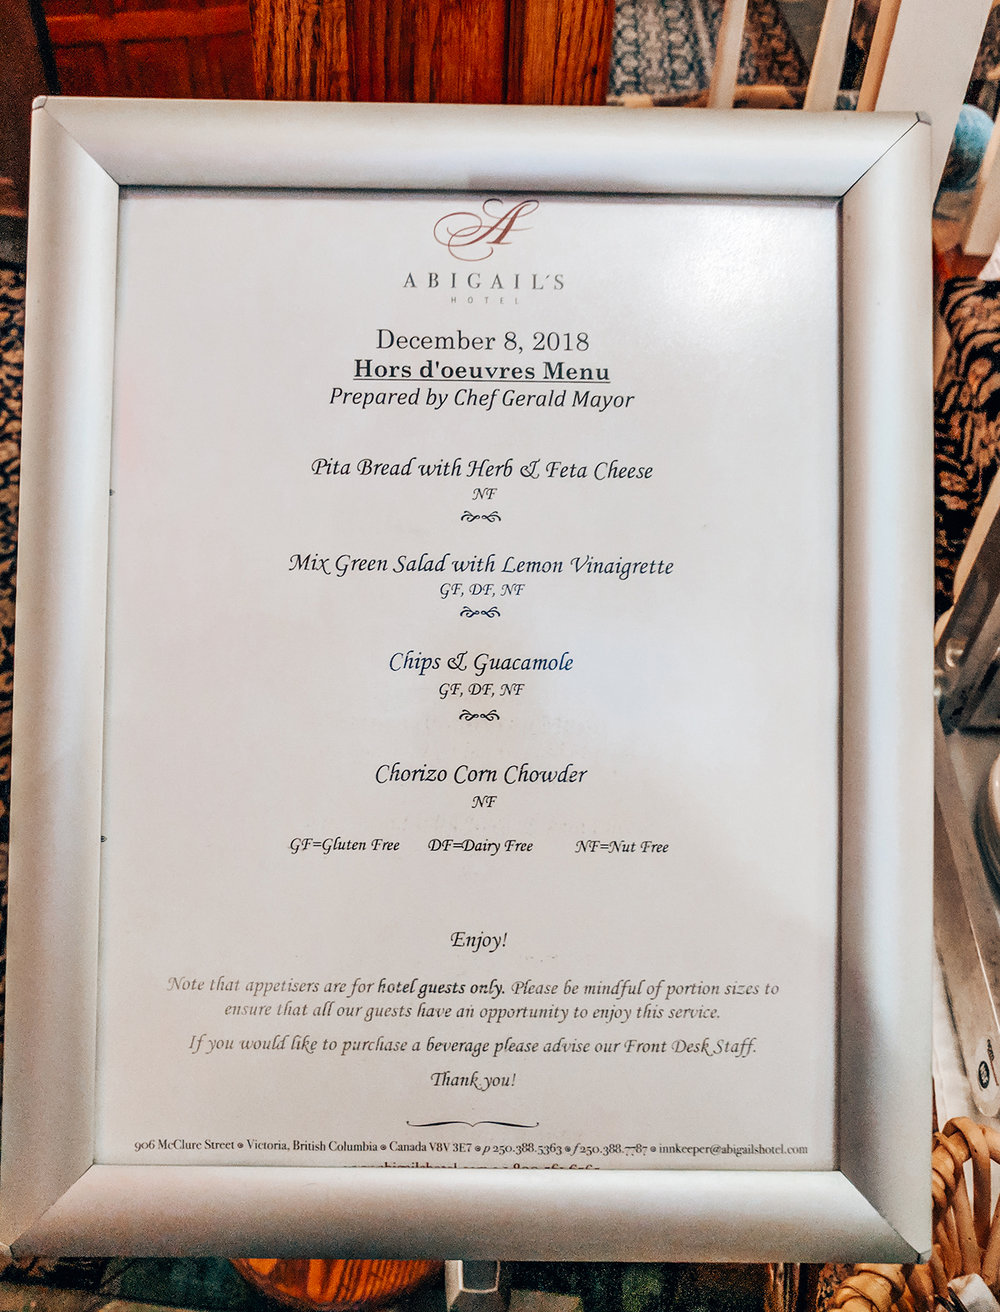 Menu for the 2nd night appetizers